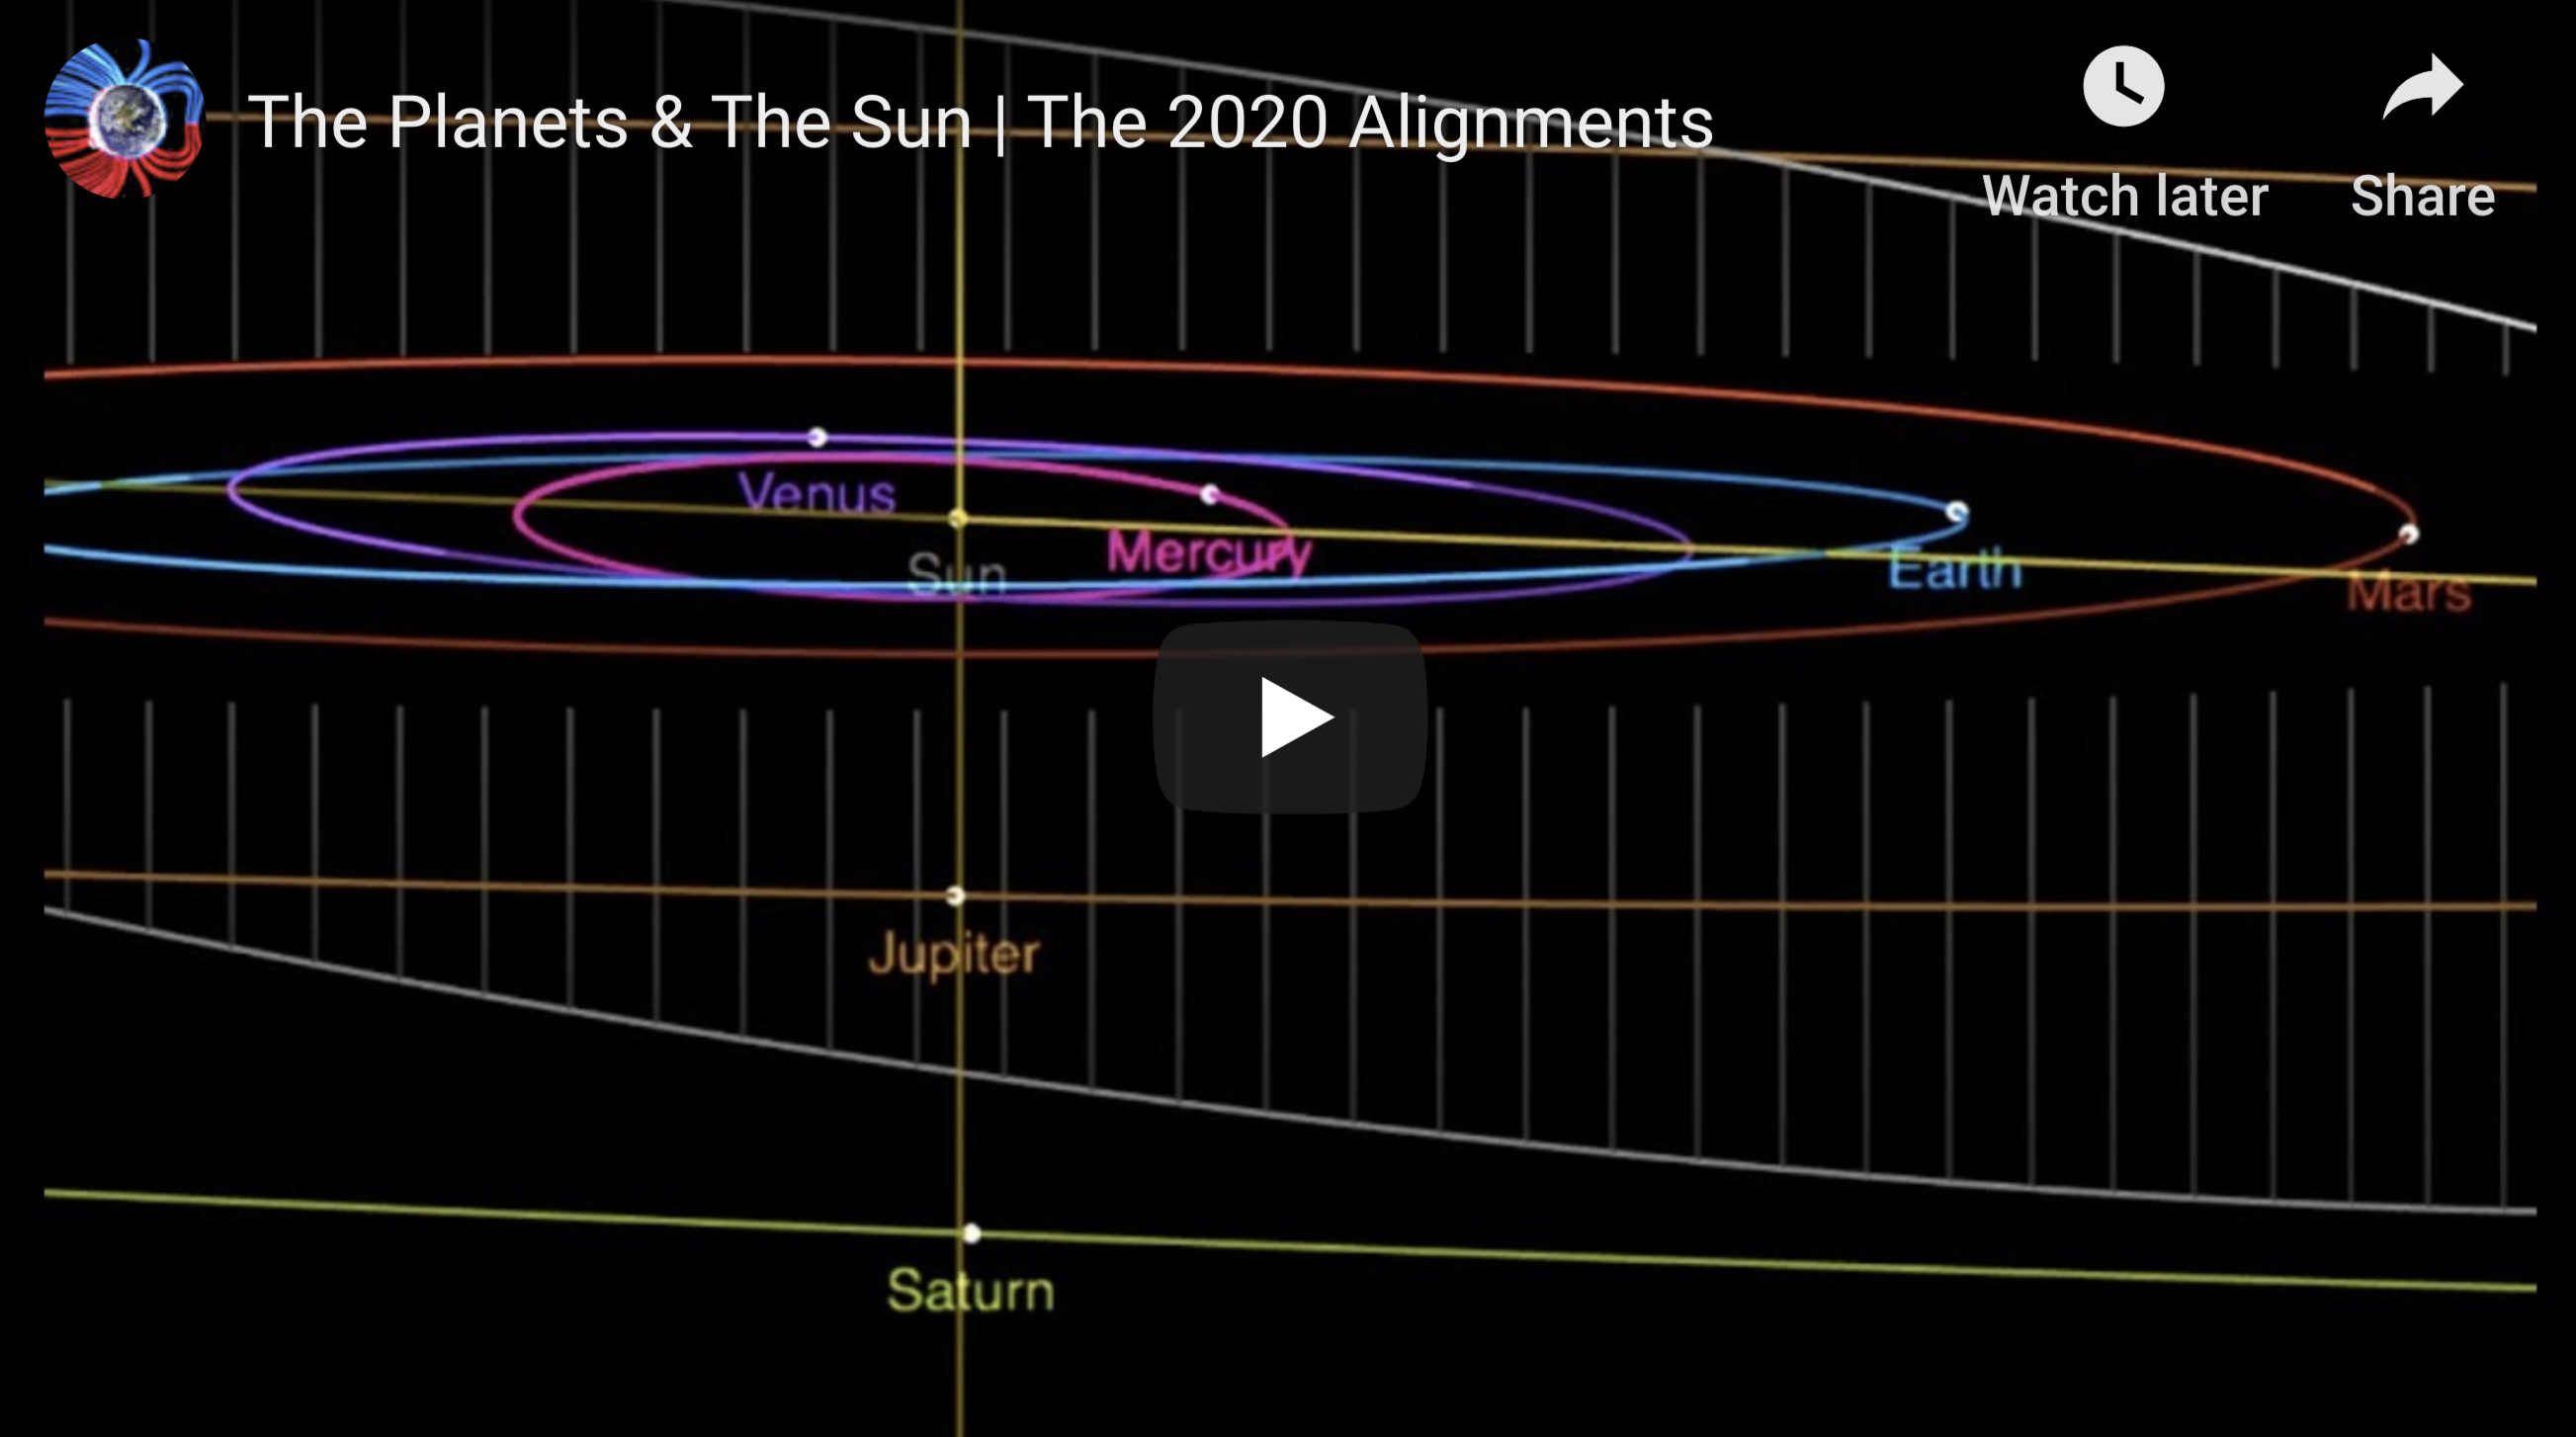 The Planets & The Sun The 2020 Alignments 1 18 2020